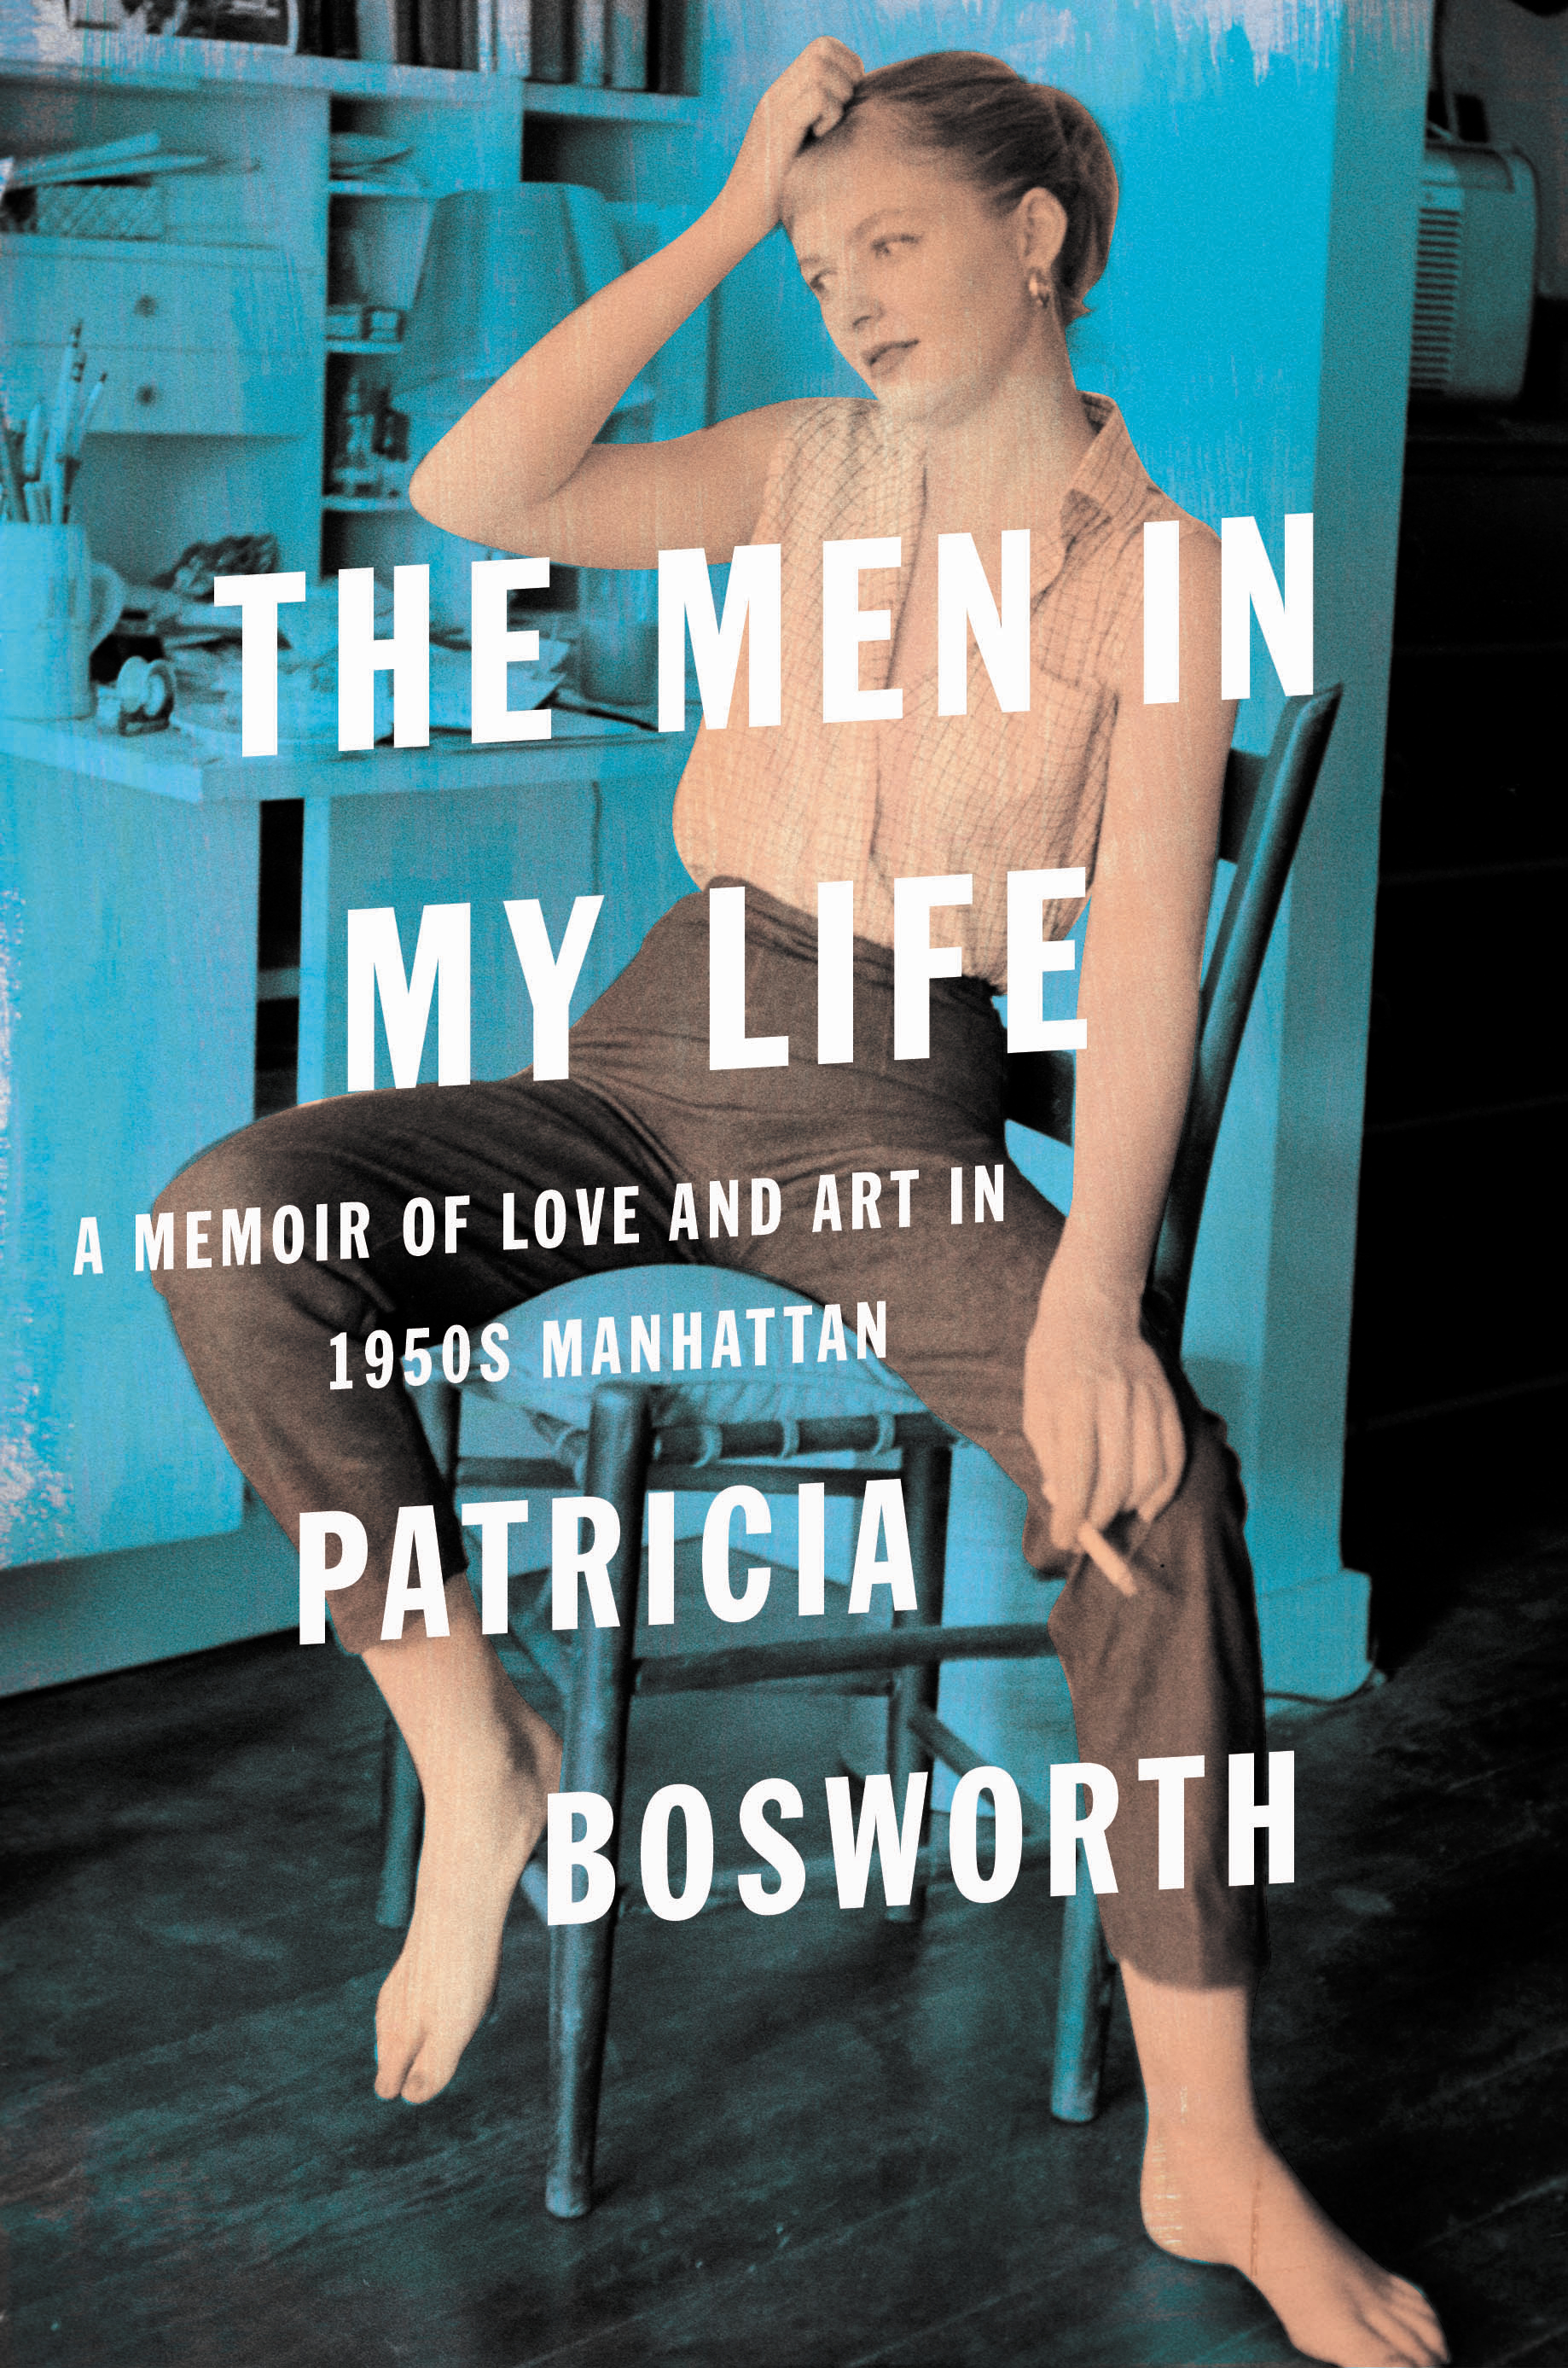 Brooklyn Book Launch: The Men in My Life by Patricia Bosworth